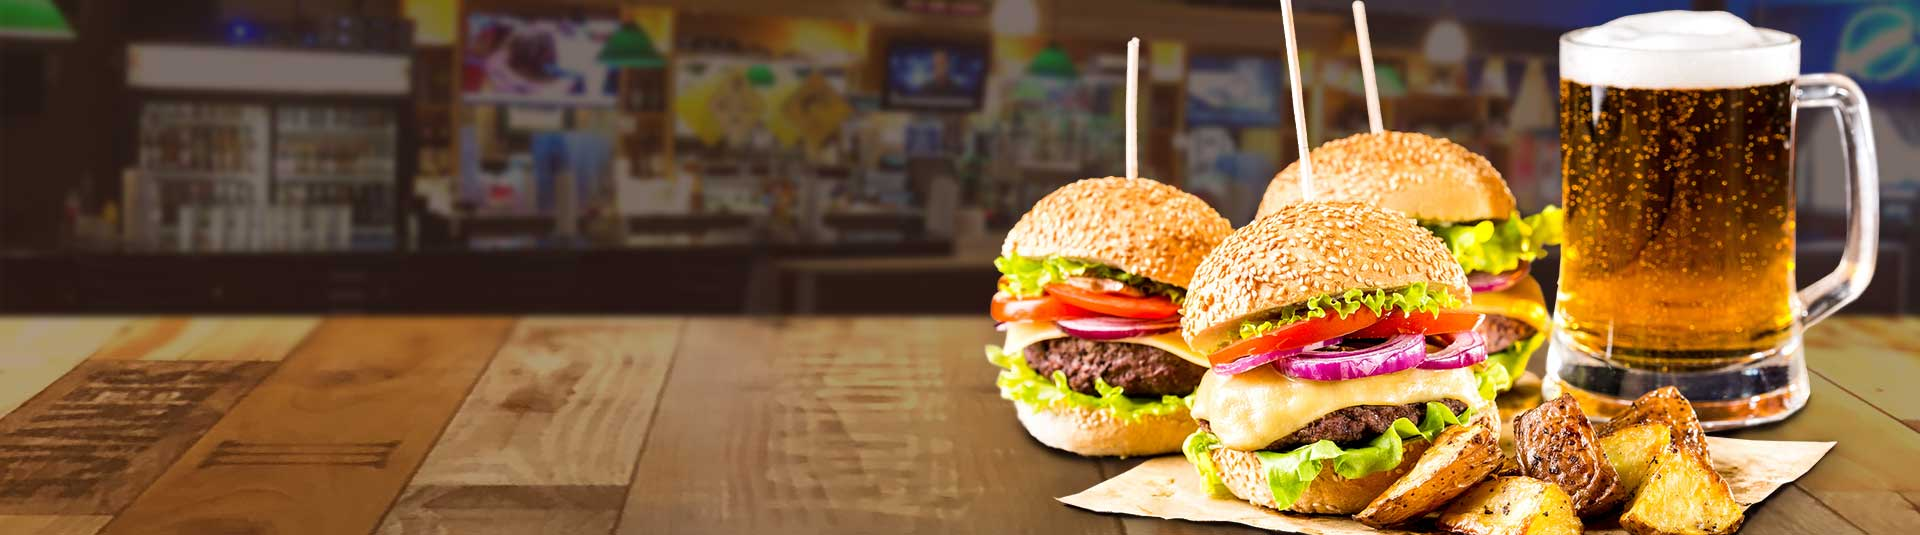 Burger night at Buzz's Bar & Grill